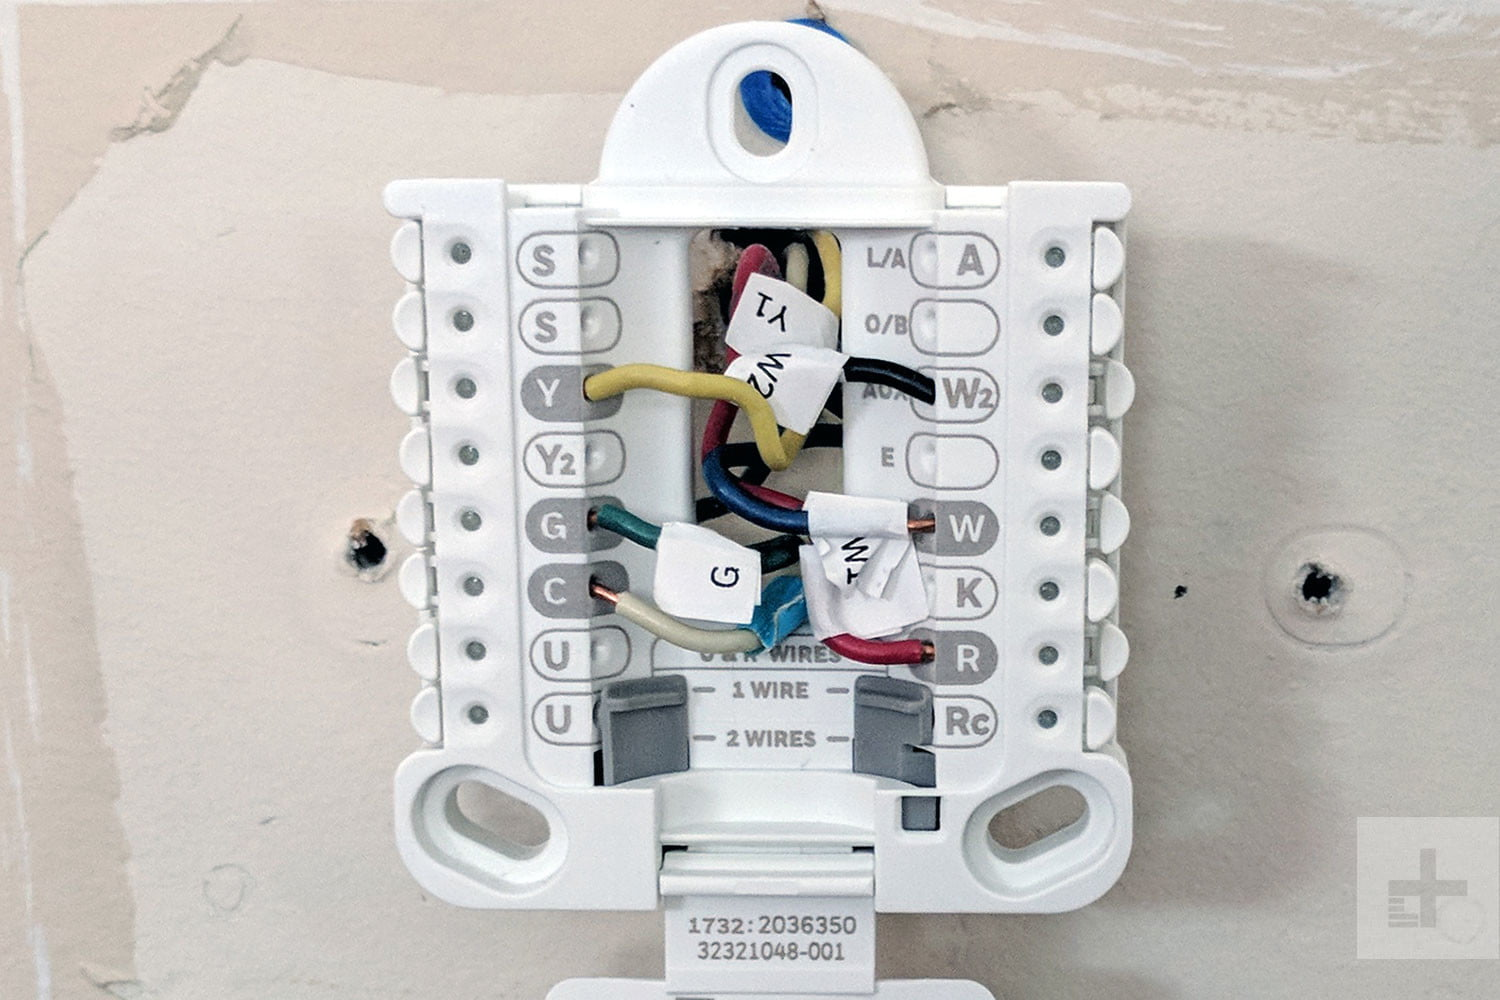 Honeywell Home Wiring Guide AppWiring Diagram